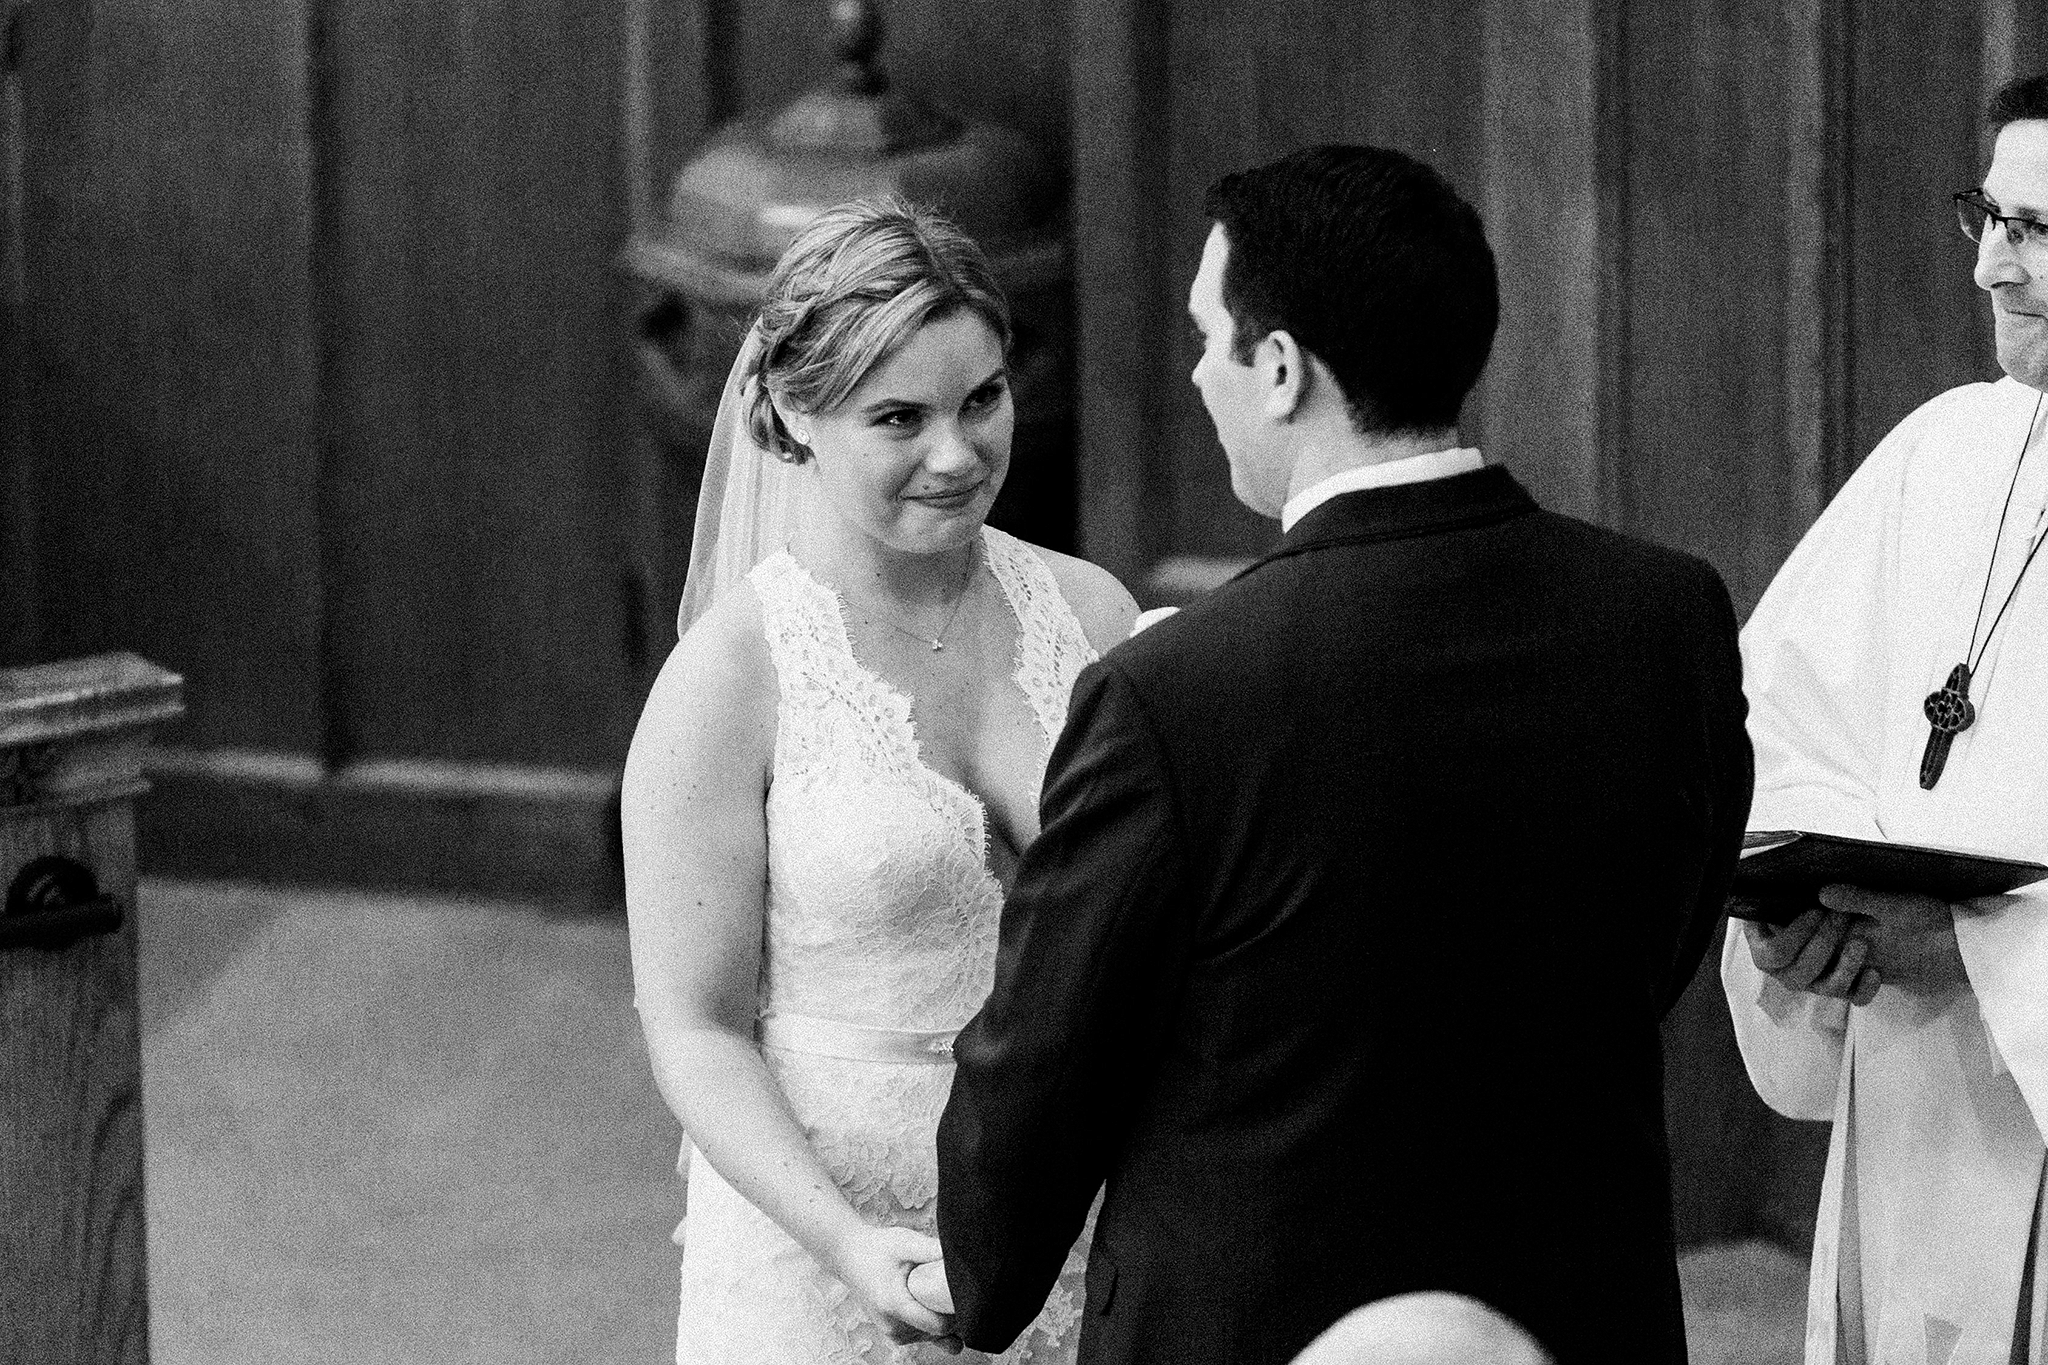 black and white image of bride and groom at the alter | dekalb, il wedding photographer